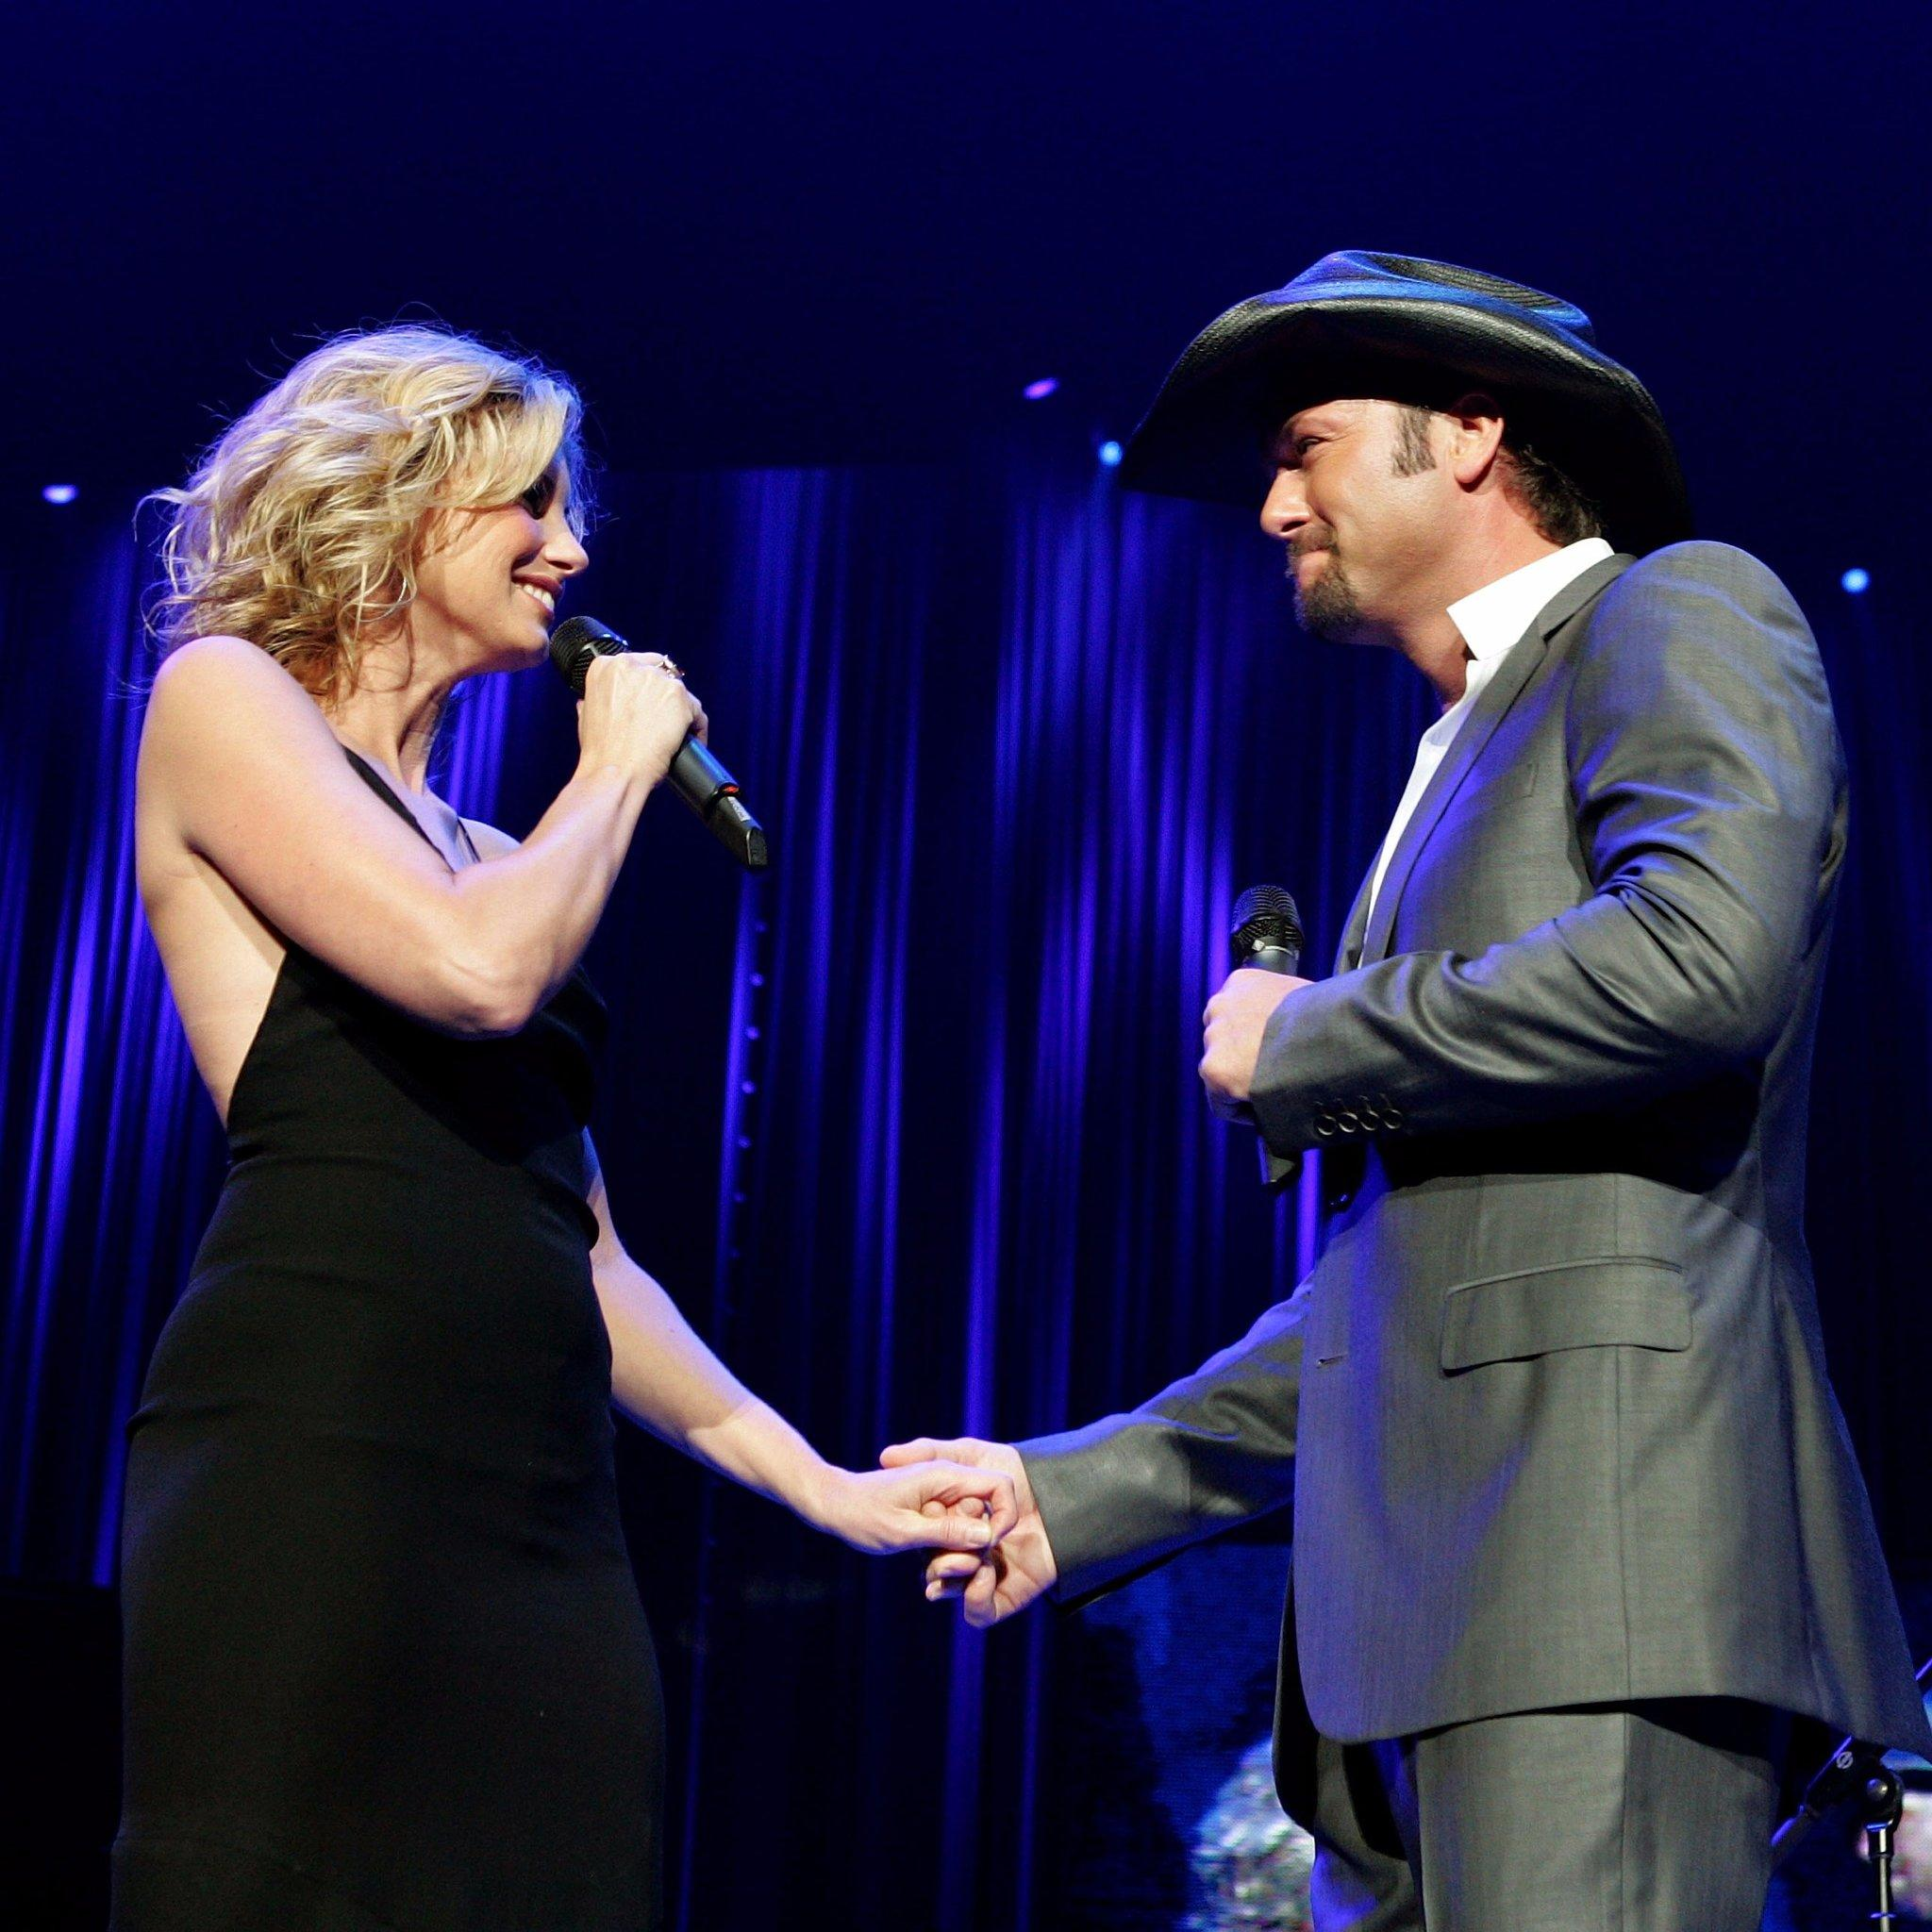 Tim Mcgraw And Faith Hill Wedding: How Did Tim McGraw And Faith Hill Meet? They Were Dating